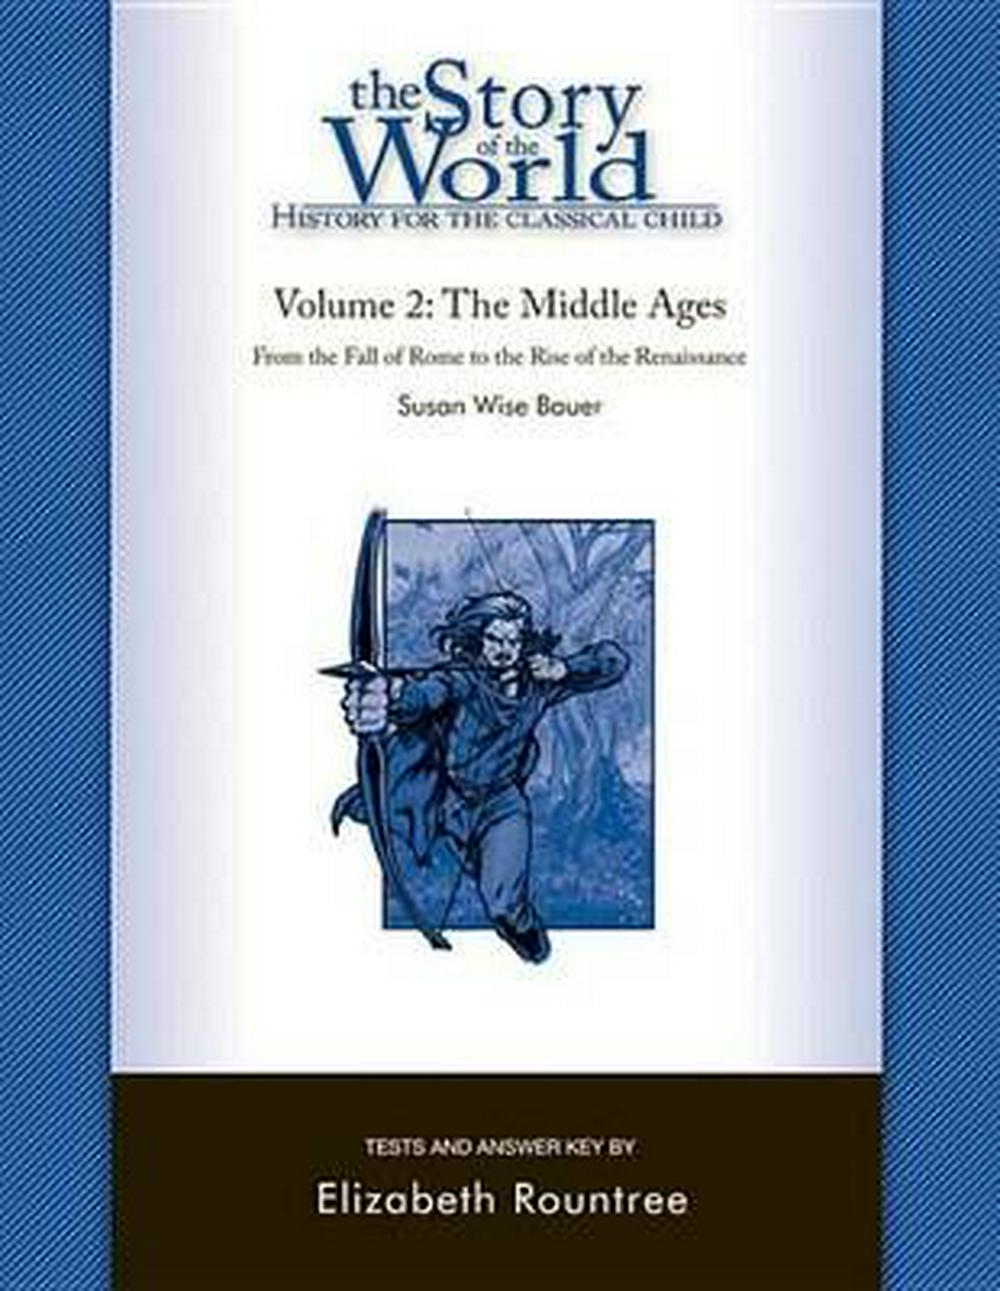 The Story of the World: Middle Ages Tests v. 2